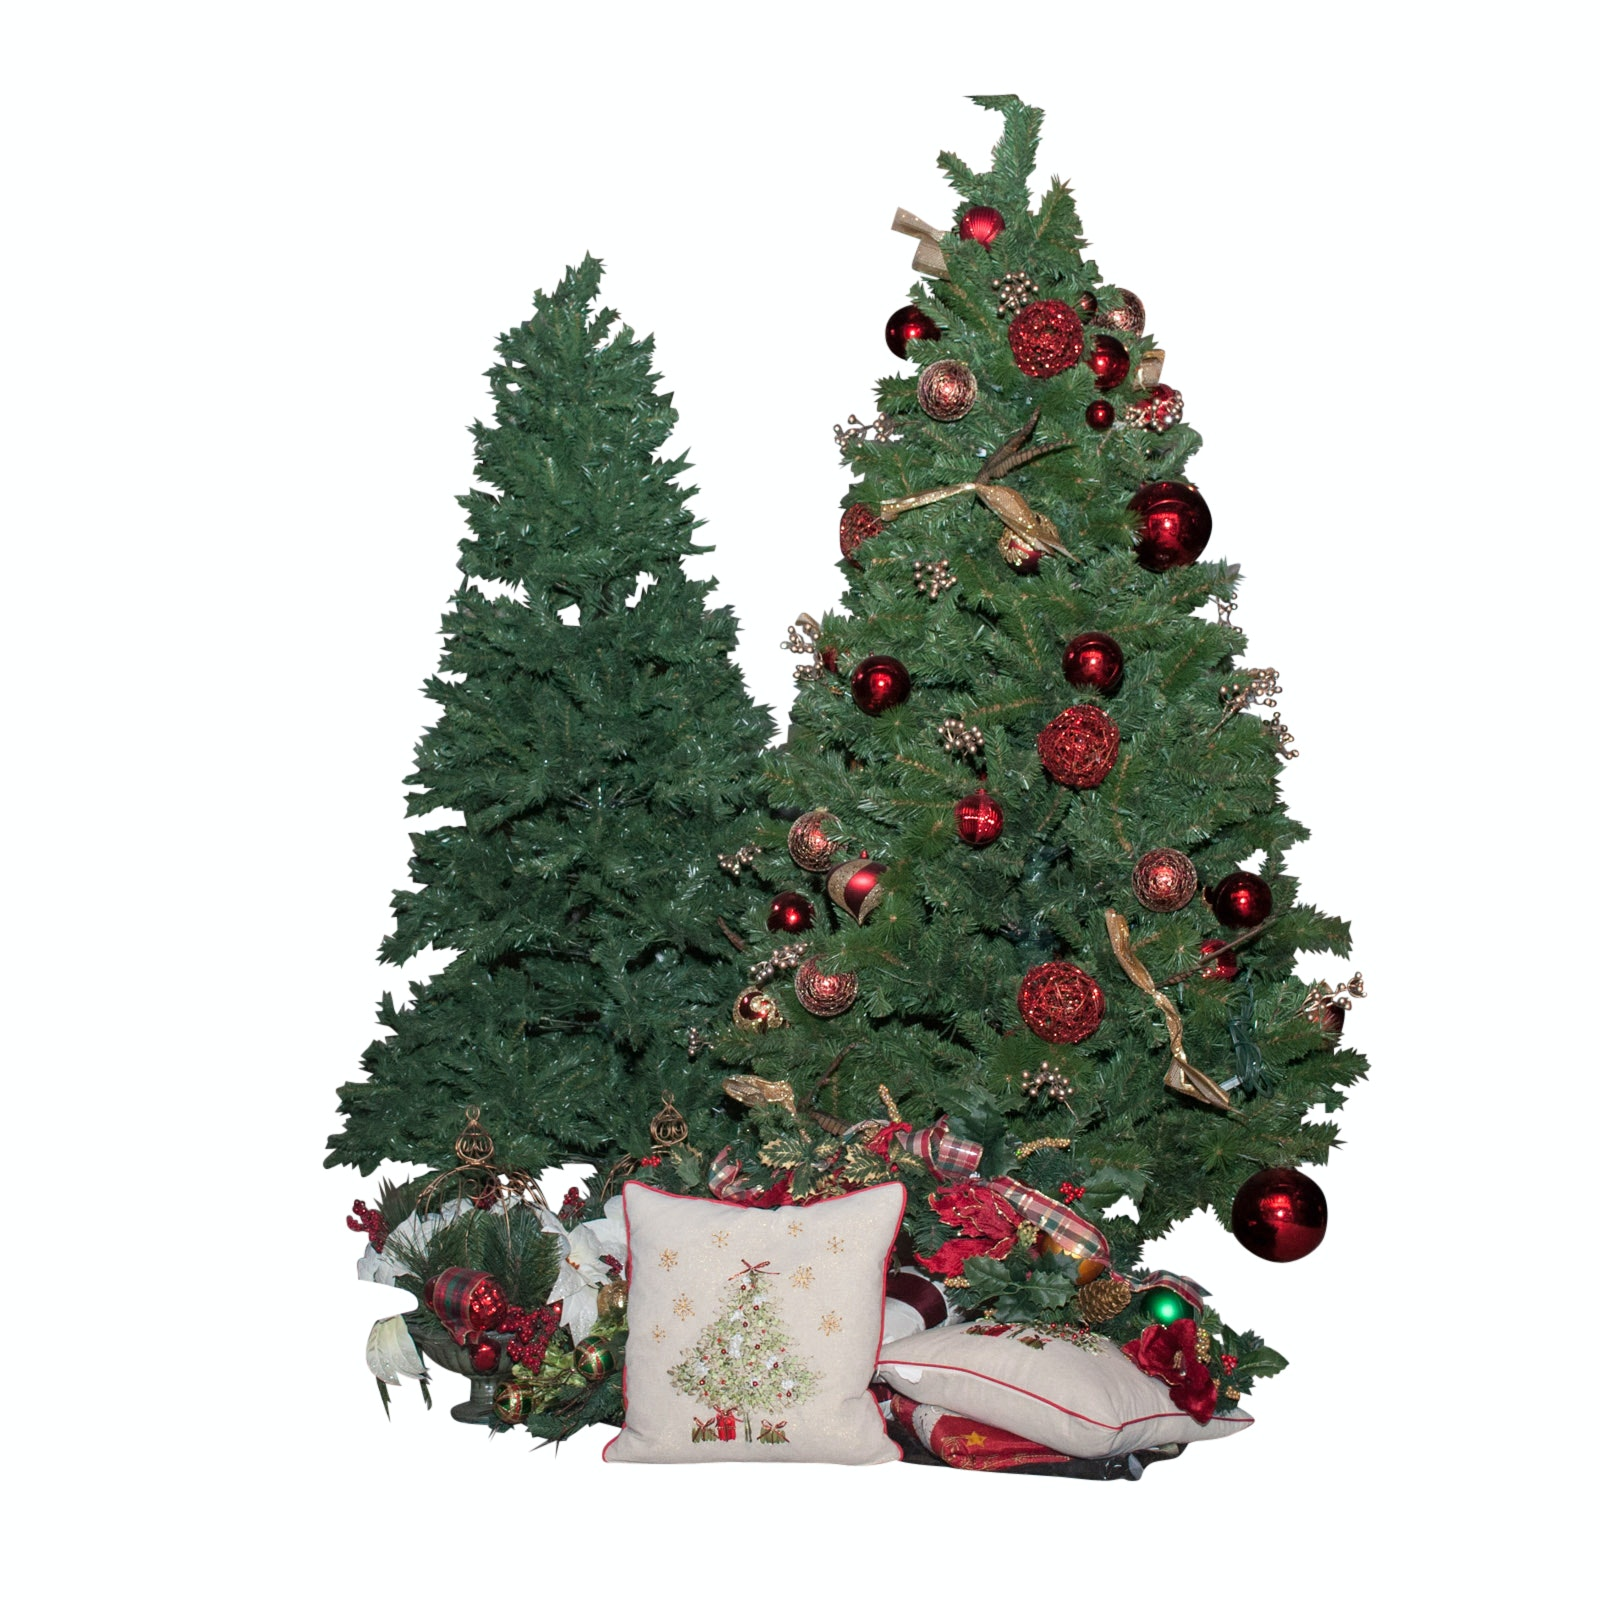 Christmas Décor Including Full-Size Trees